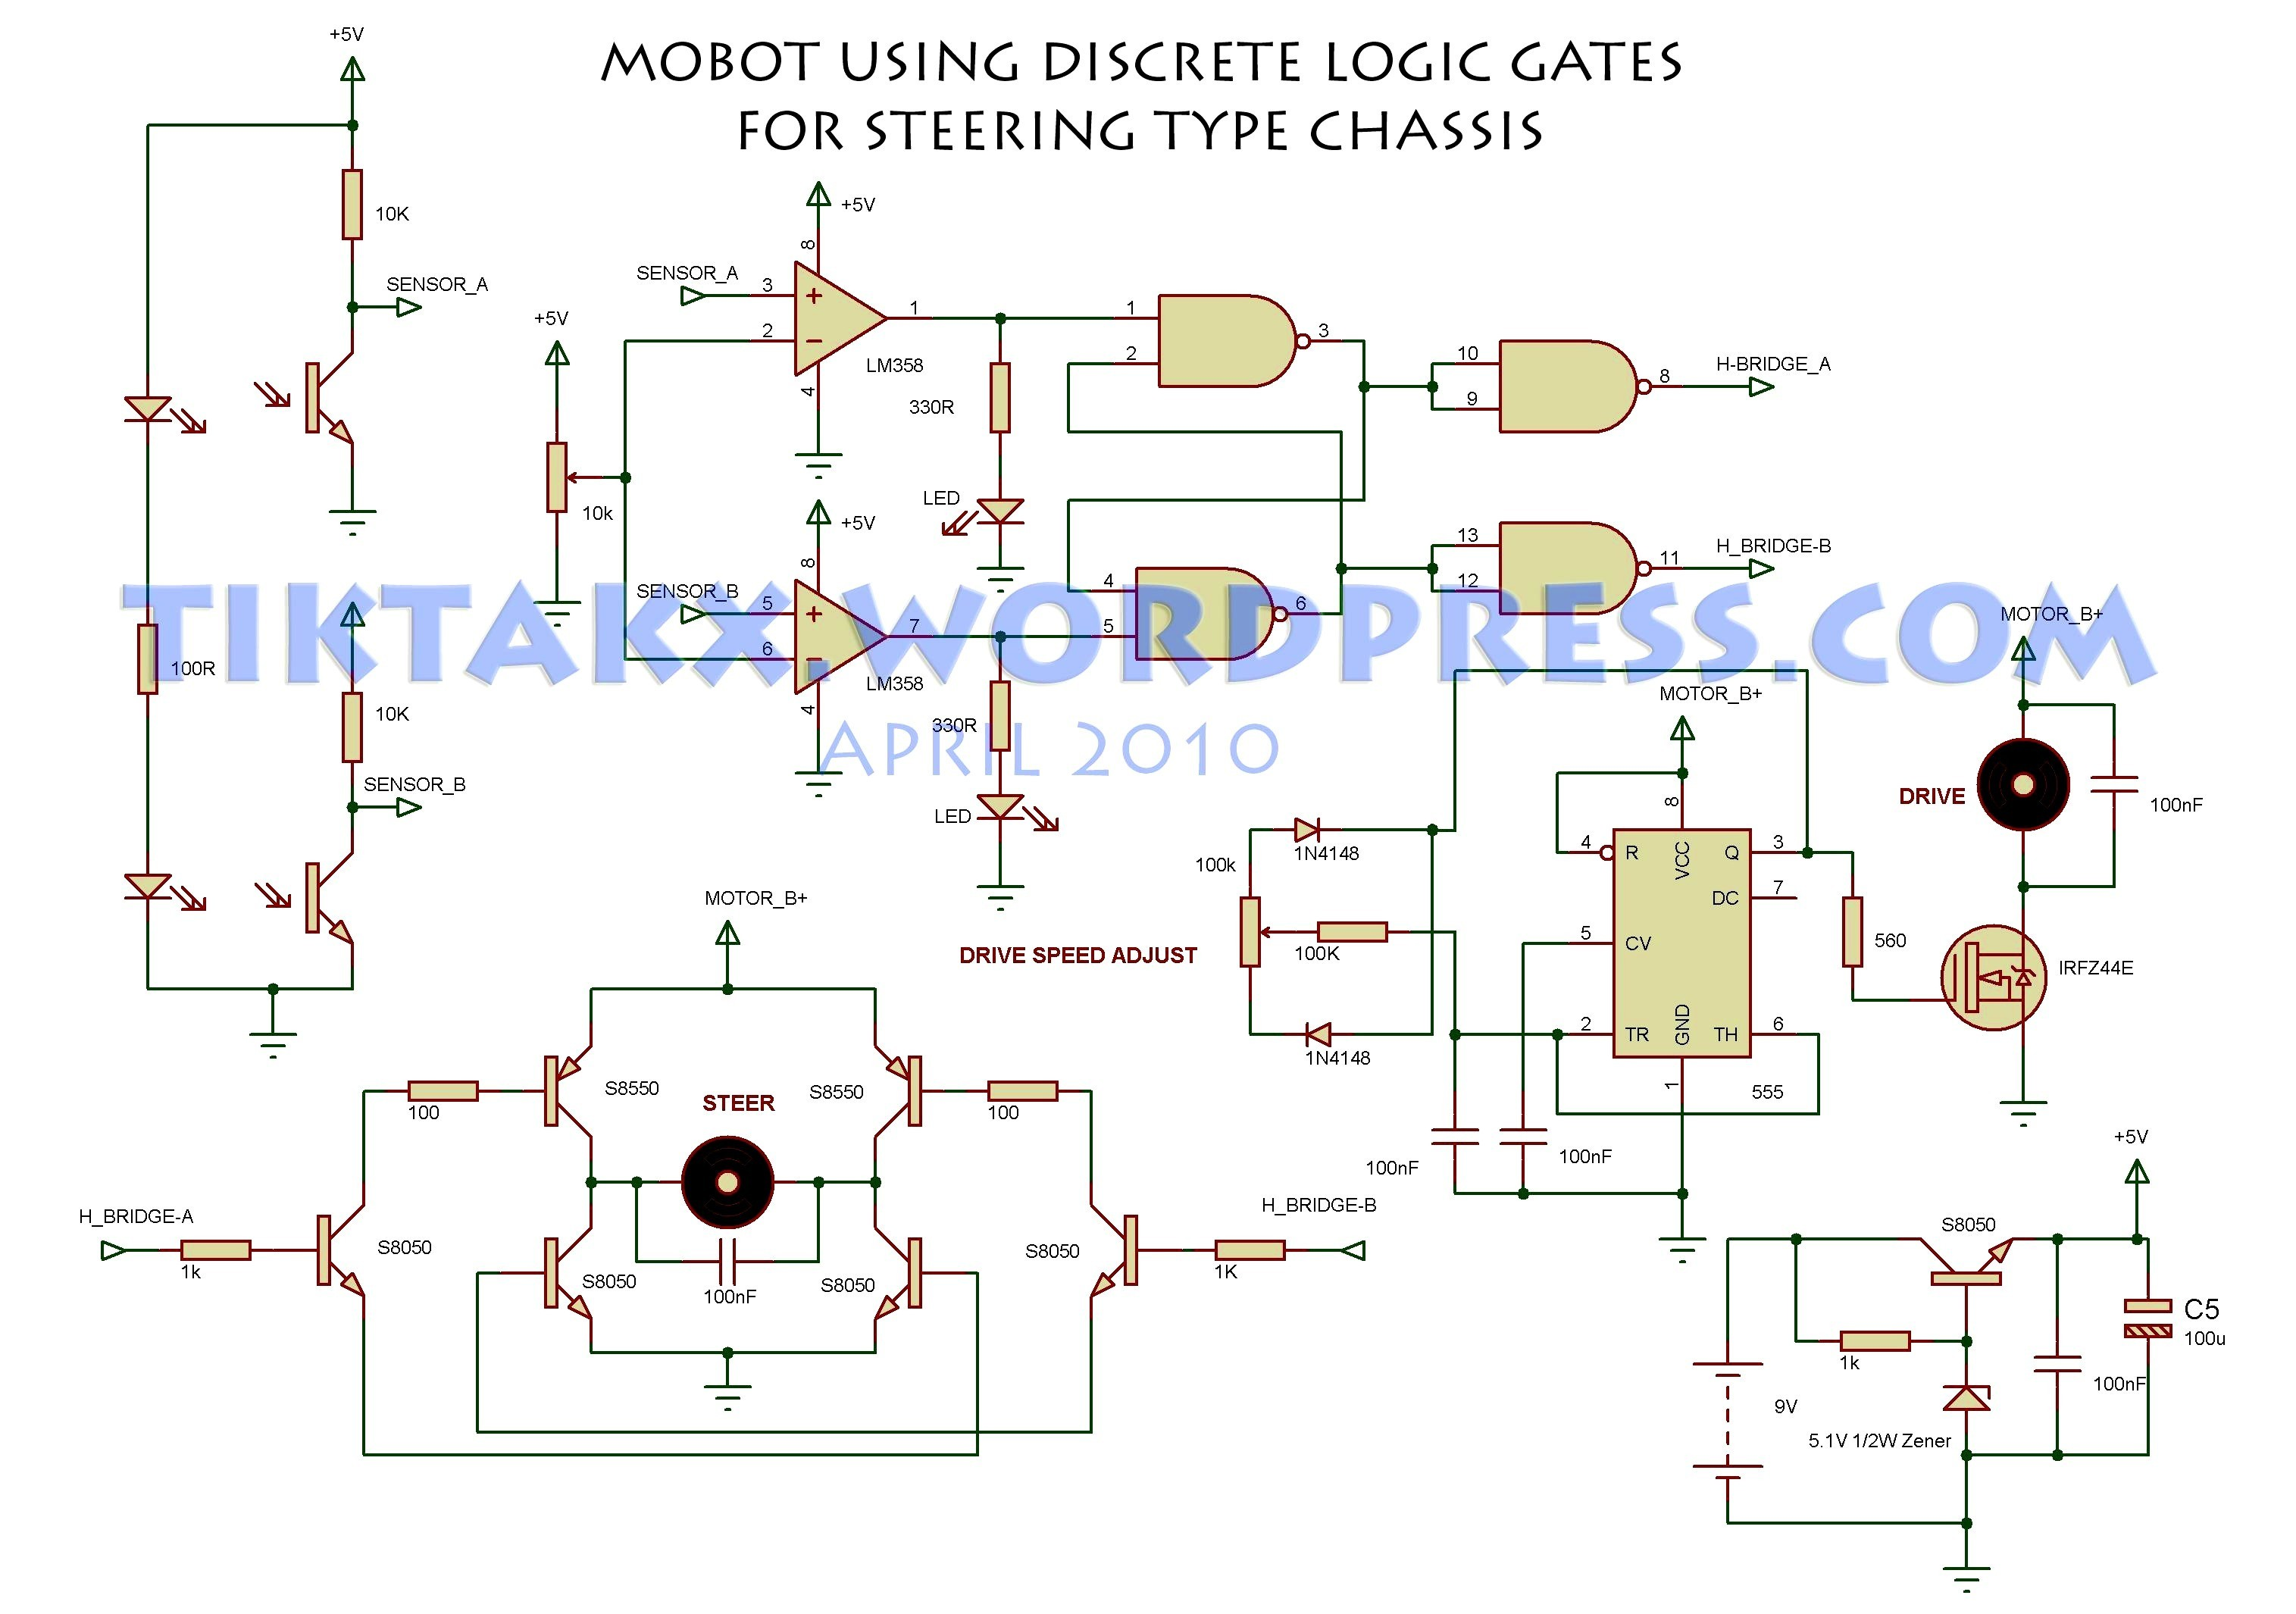 Schematic Circuit Diagram Wii Wiring For Remote Control Toy Wire Car Center U2022 Rh Spaculus Co